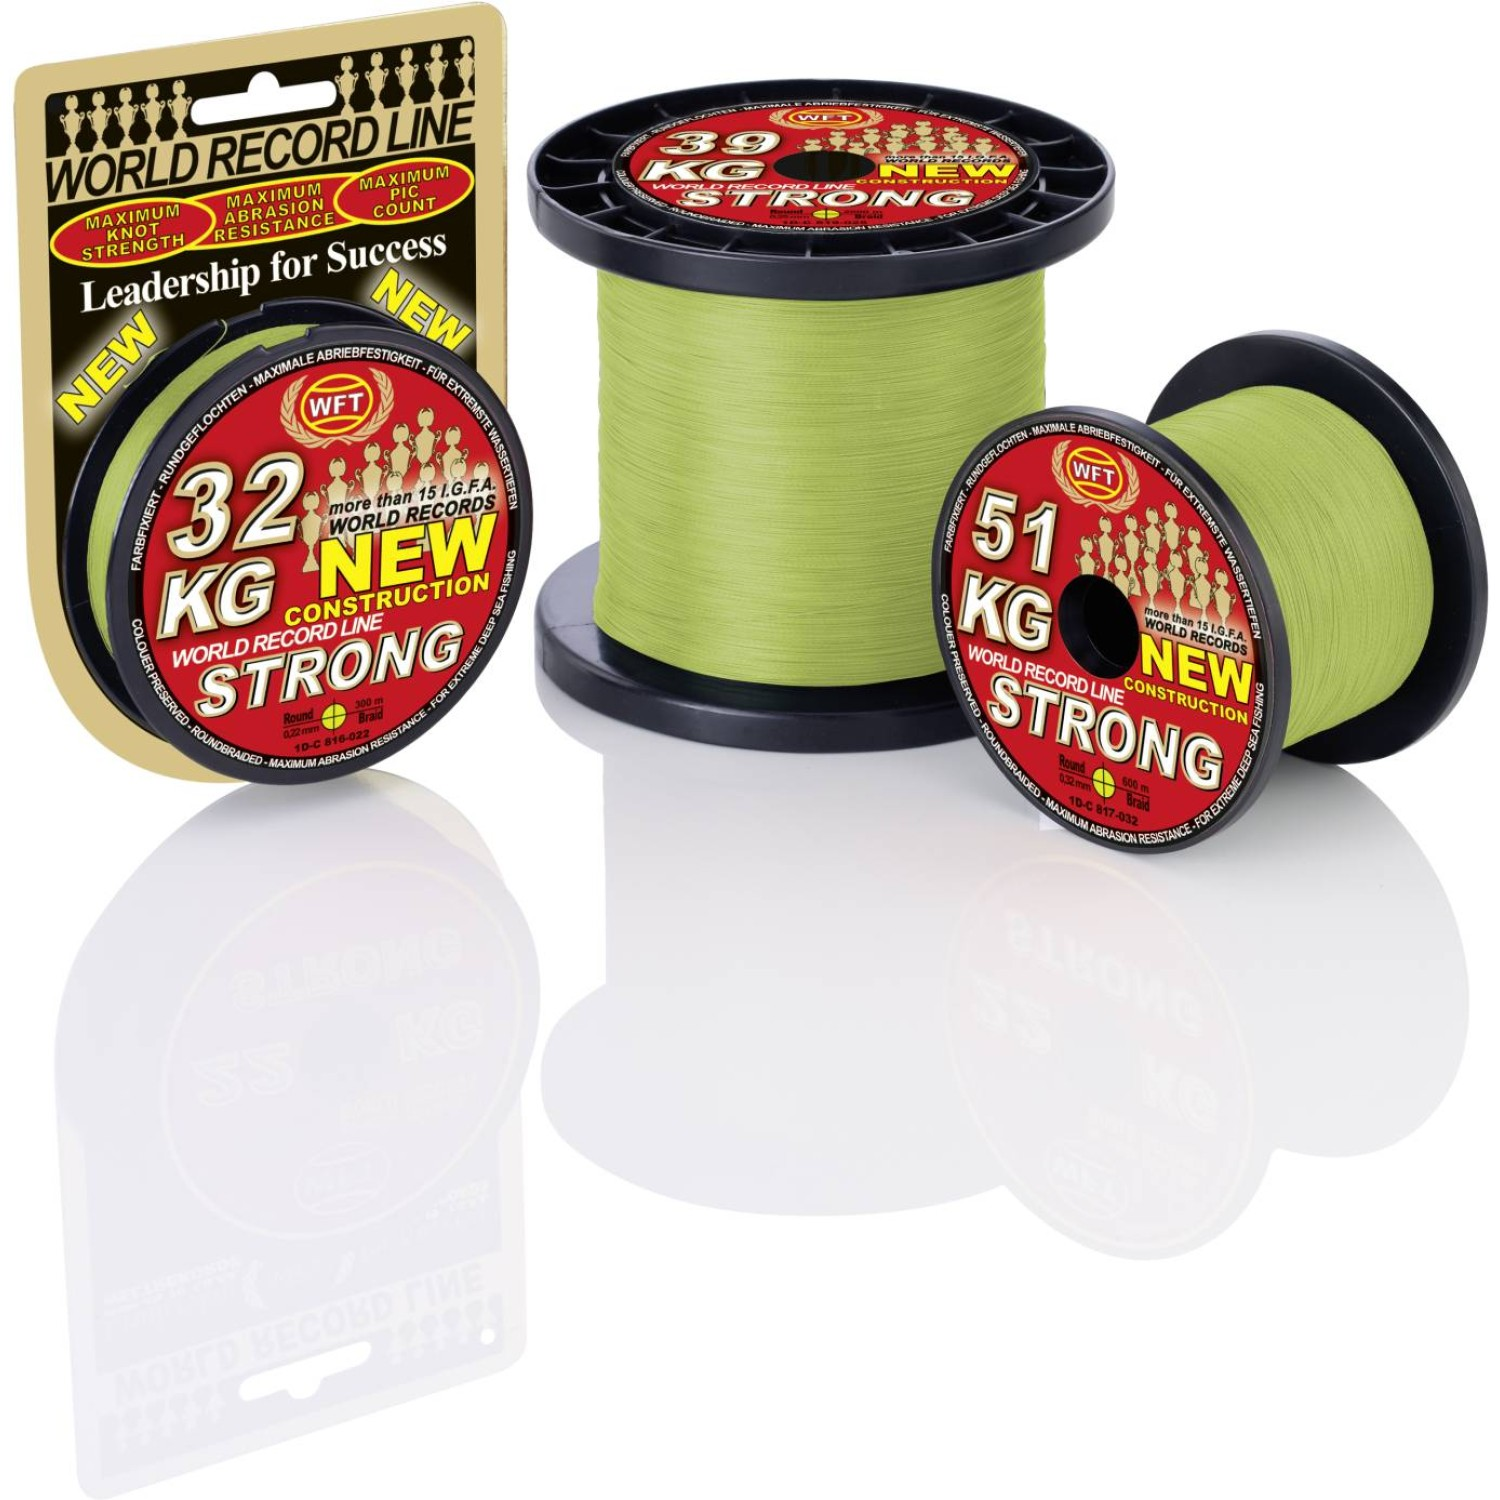 WFT NEW KG Strong 600m